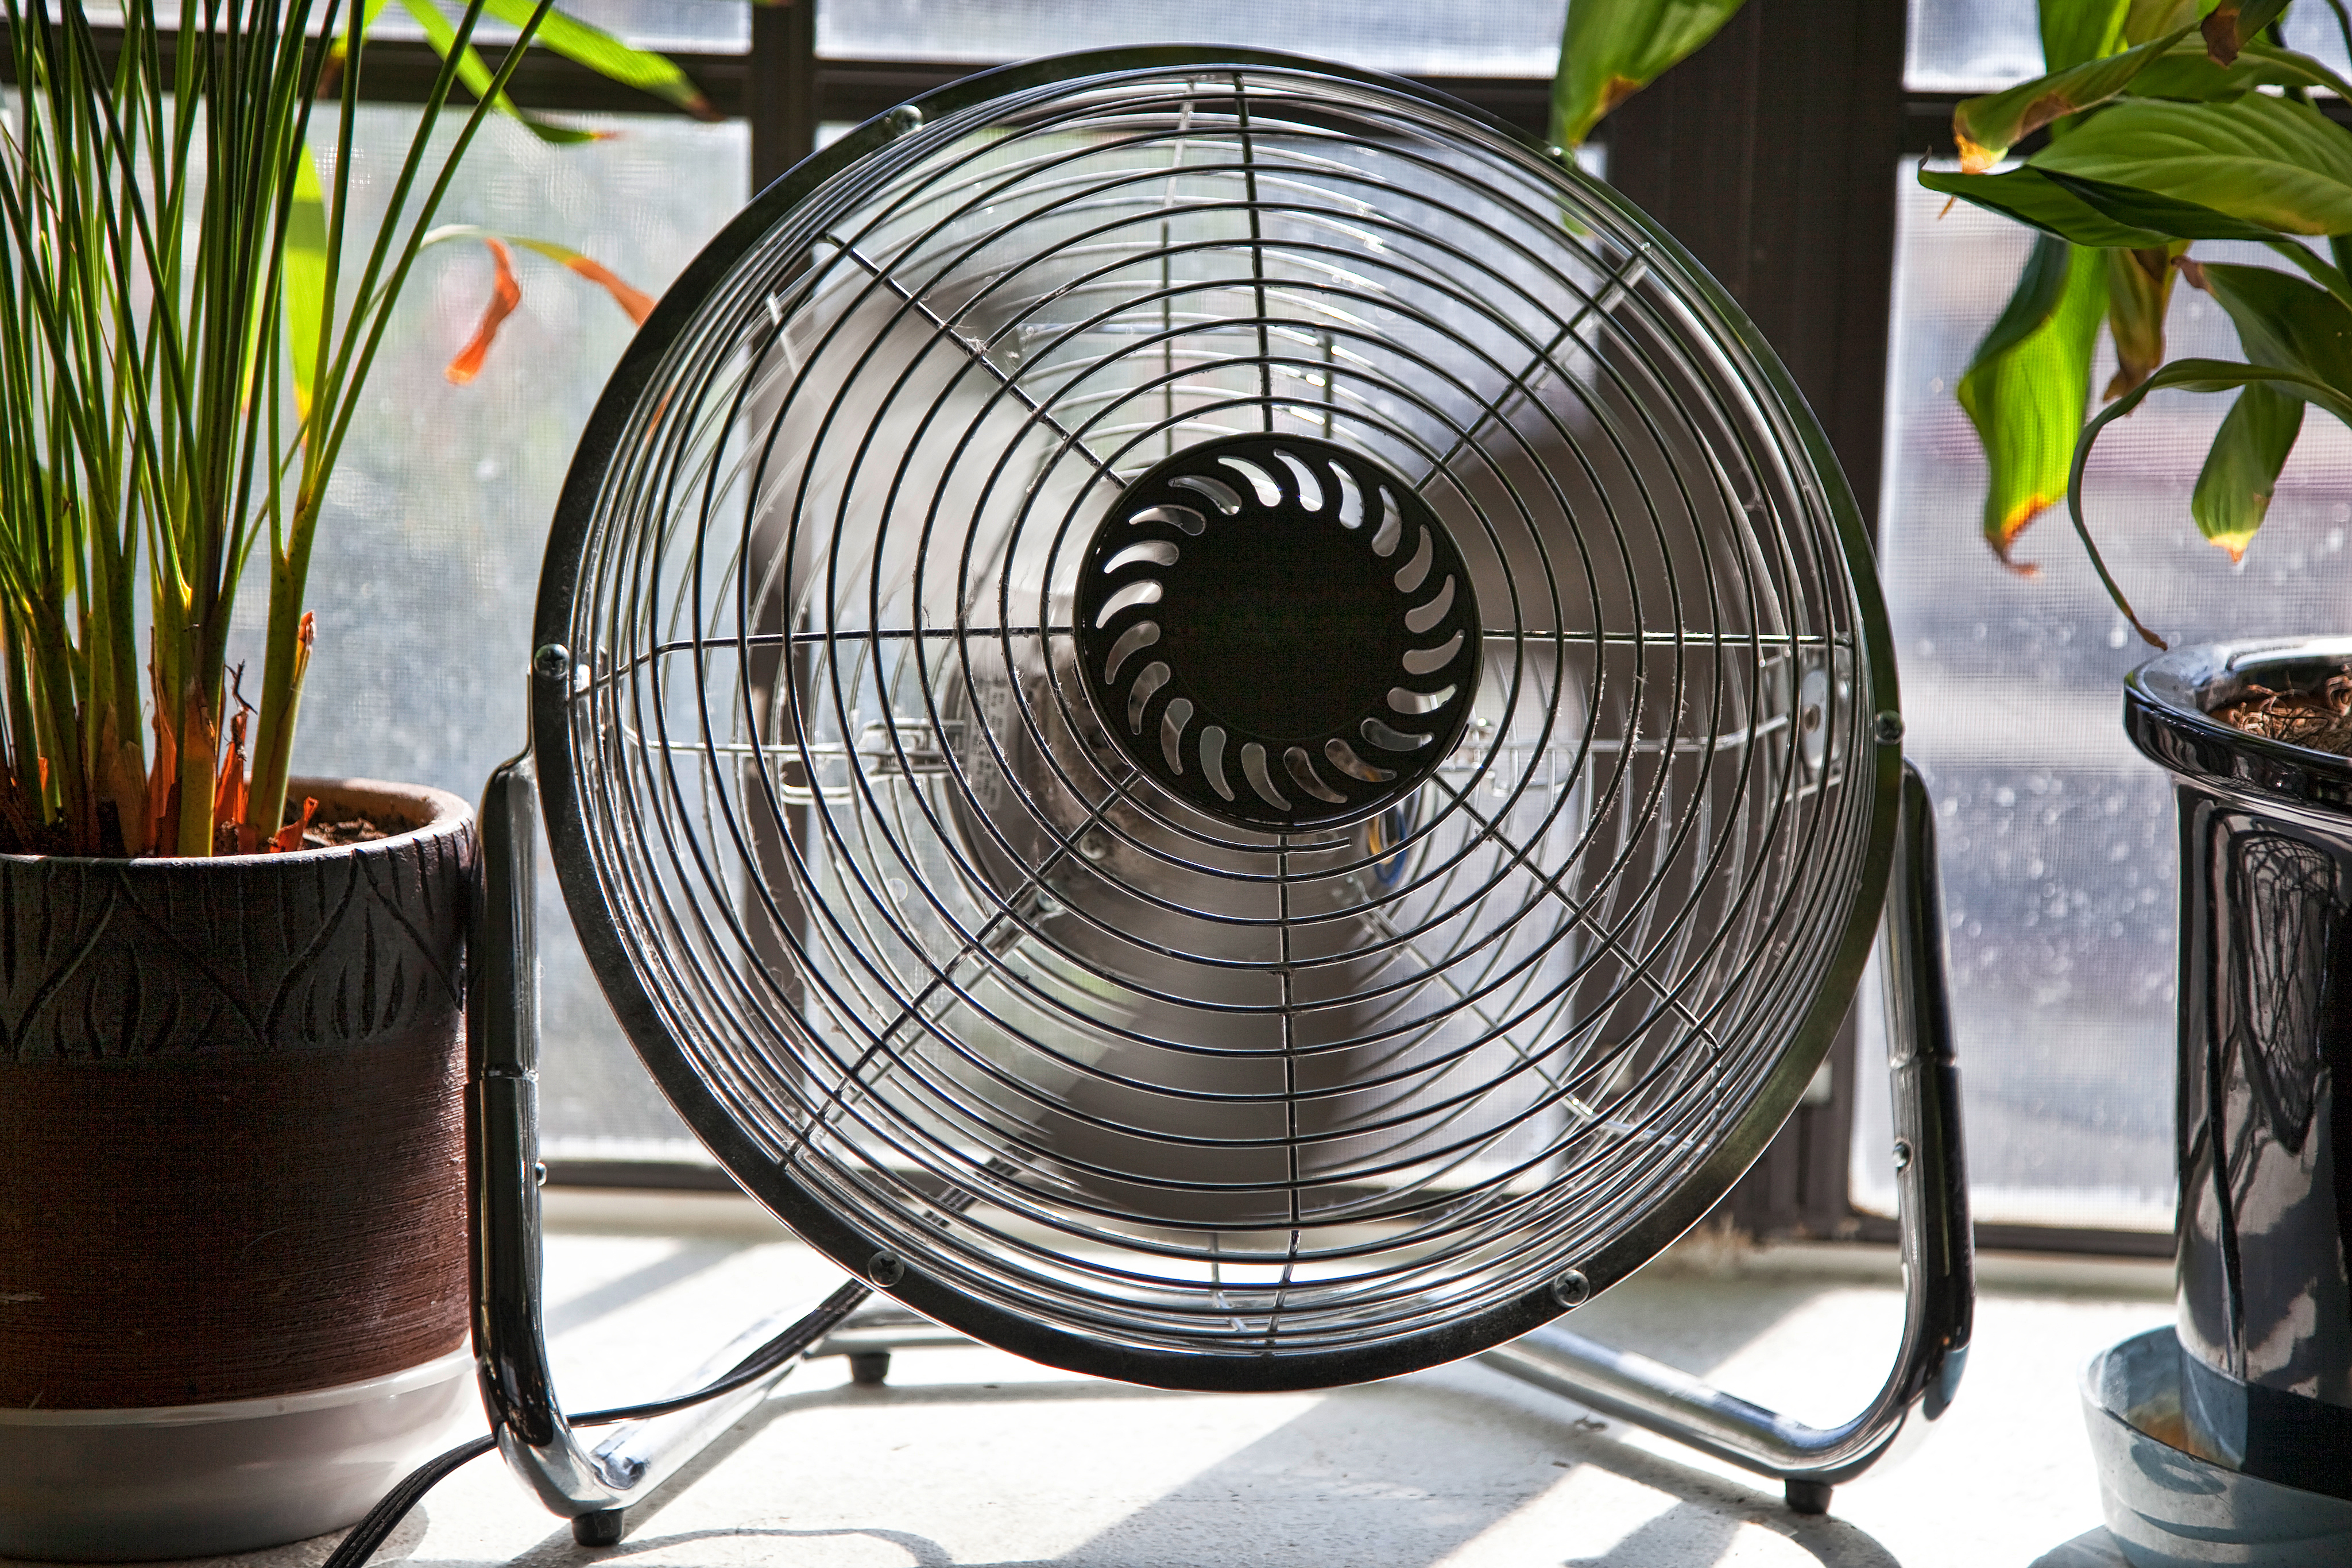 5 Best Window Fans to Keep Cool in 2020 - Review & Buying Guide